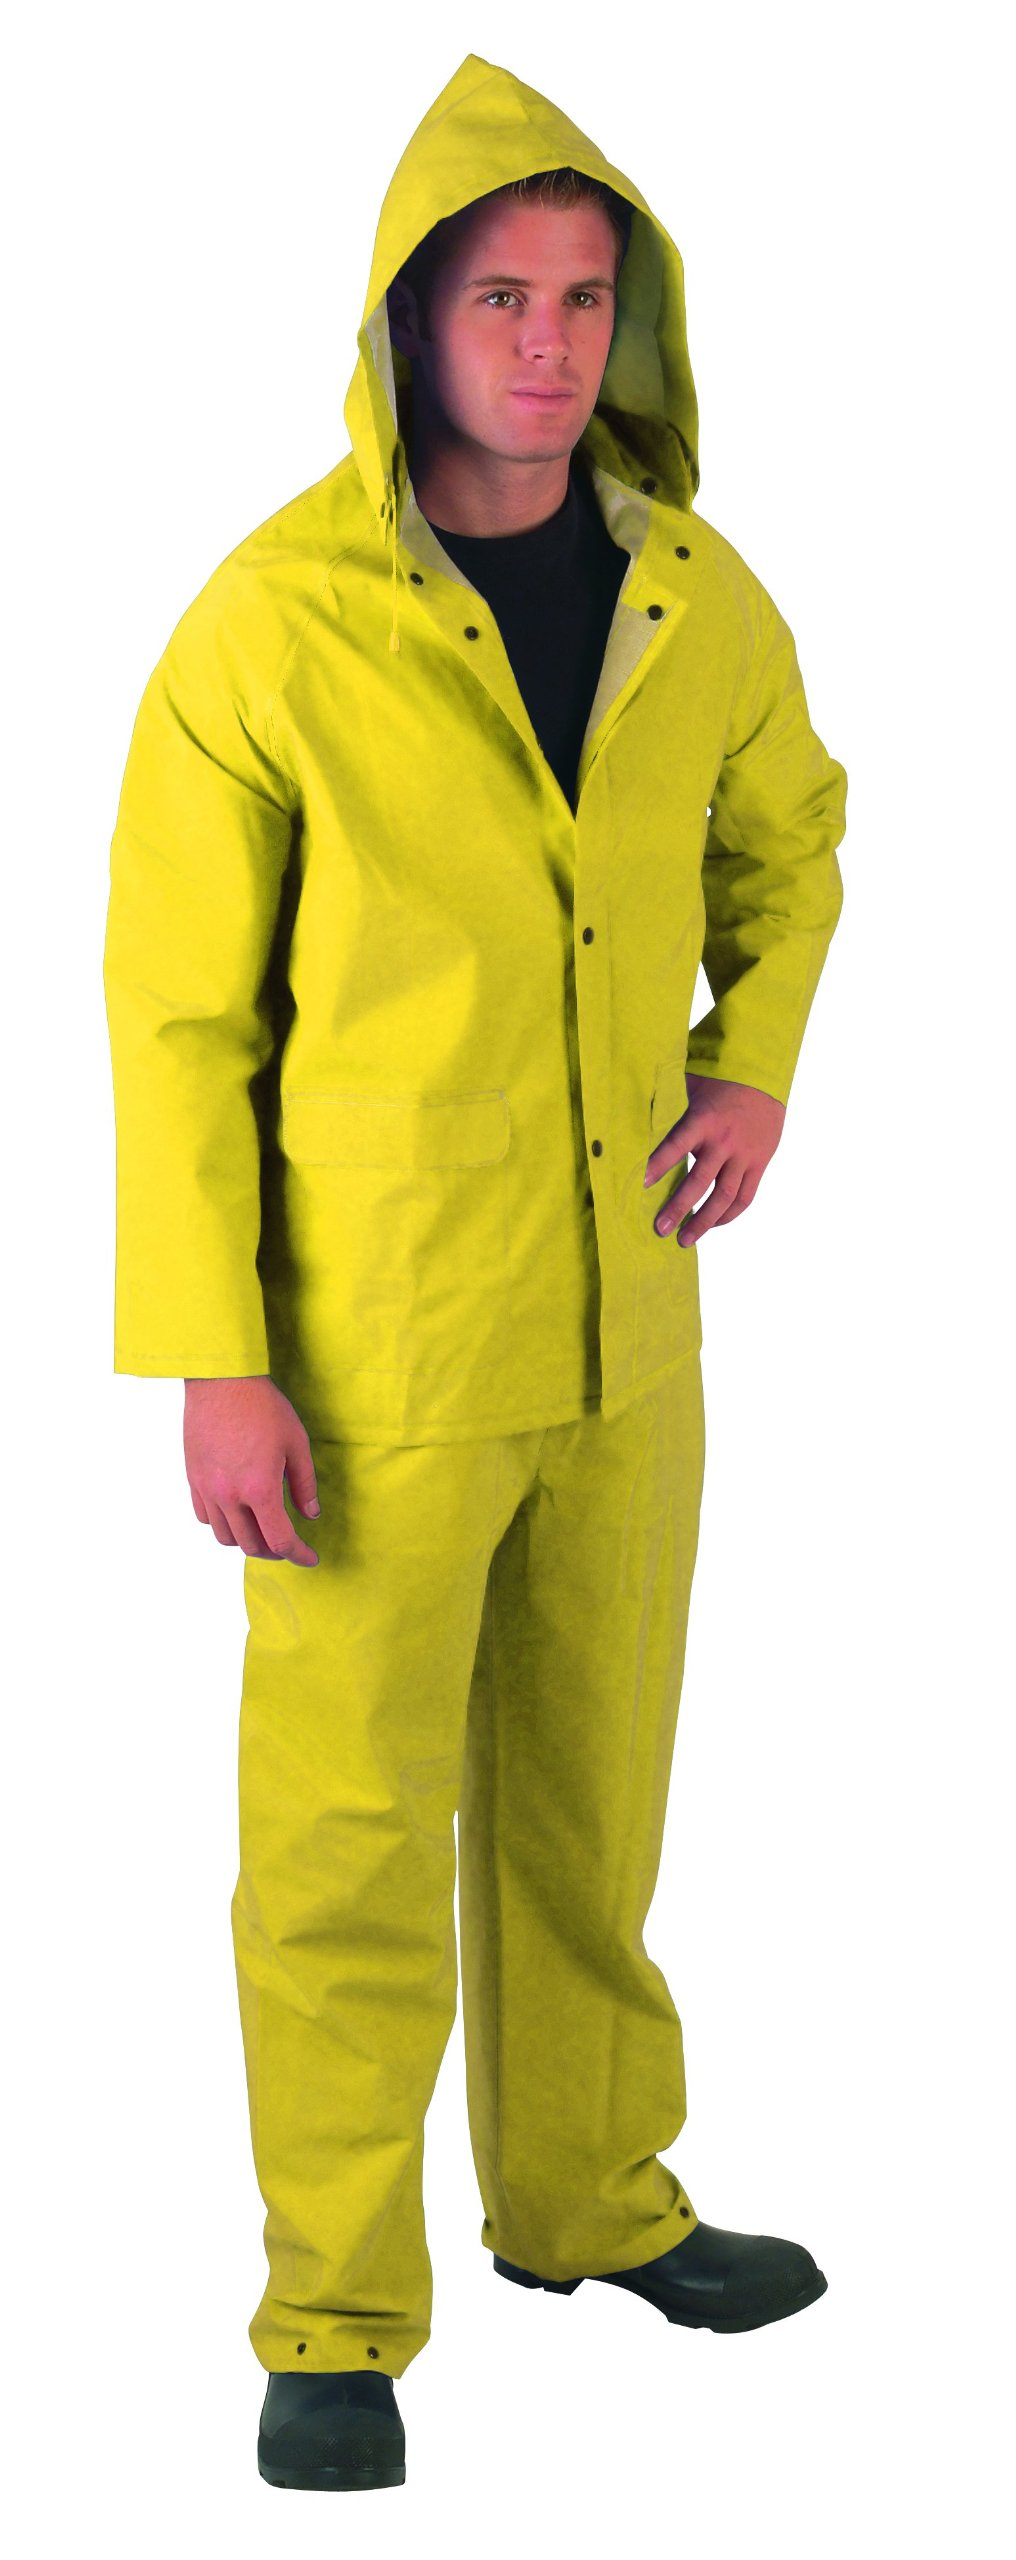 MCR Safety 2403S Classic Plus PVC/Polyester 3-Piece Corduroy Collar Rain Suit with Detachable Hood and Bibpant, Yellow, Small by MCR Safety (Image #2)